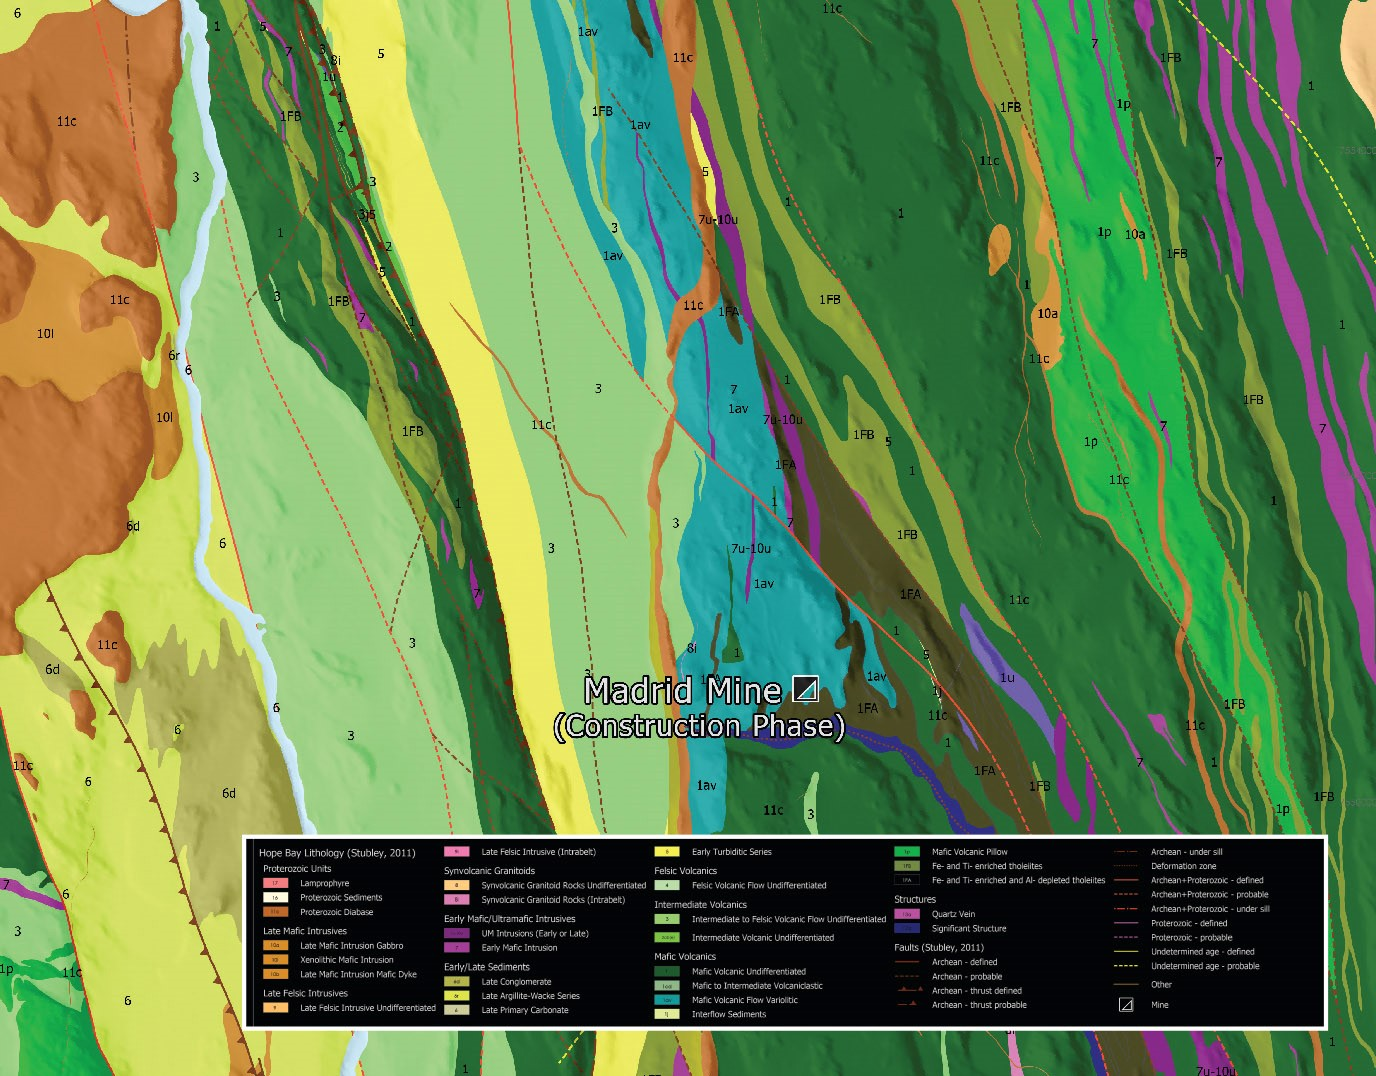 """A copy of the December map from Esri Canada's 2020 Map Calendar, entitled """"Hope Bay Greenstone Geology Belt, Nunavut, Canada"""" by TMAC Resources Inc. This map displays the Hope Bay greenstone geology belt in the western region of Nunavut. Multicoloured bands going from the top to the bottom of the image at an angle show where different rock formations are located relative to one another."""